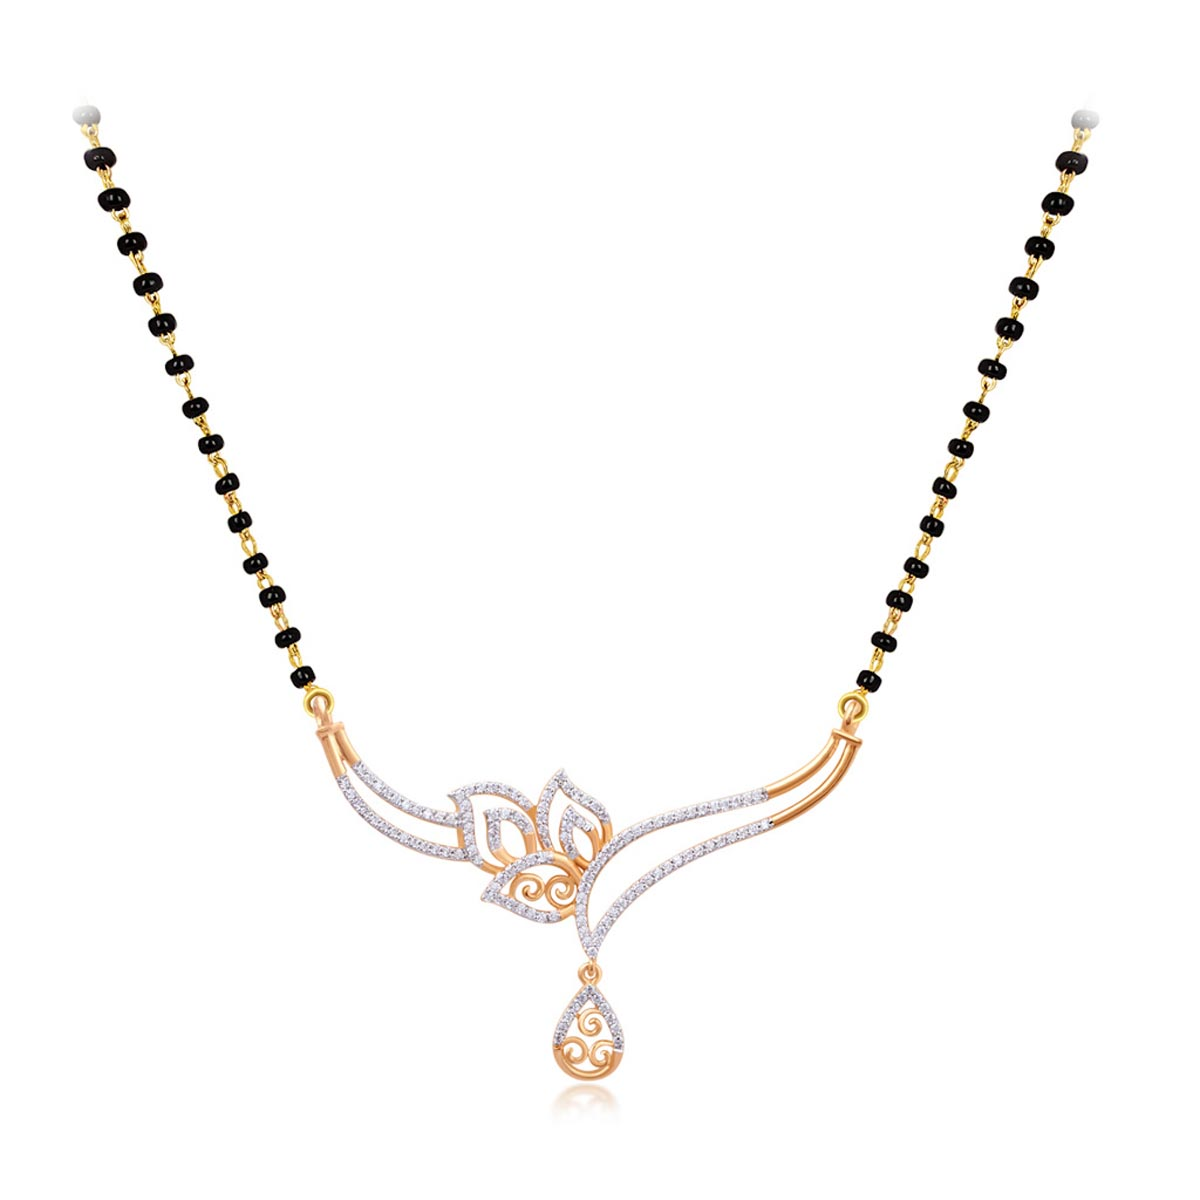 The Angel Mangalsutra Pendant